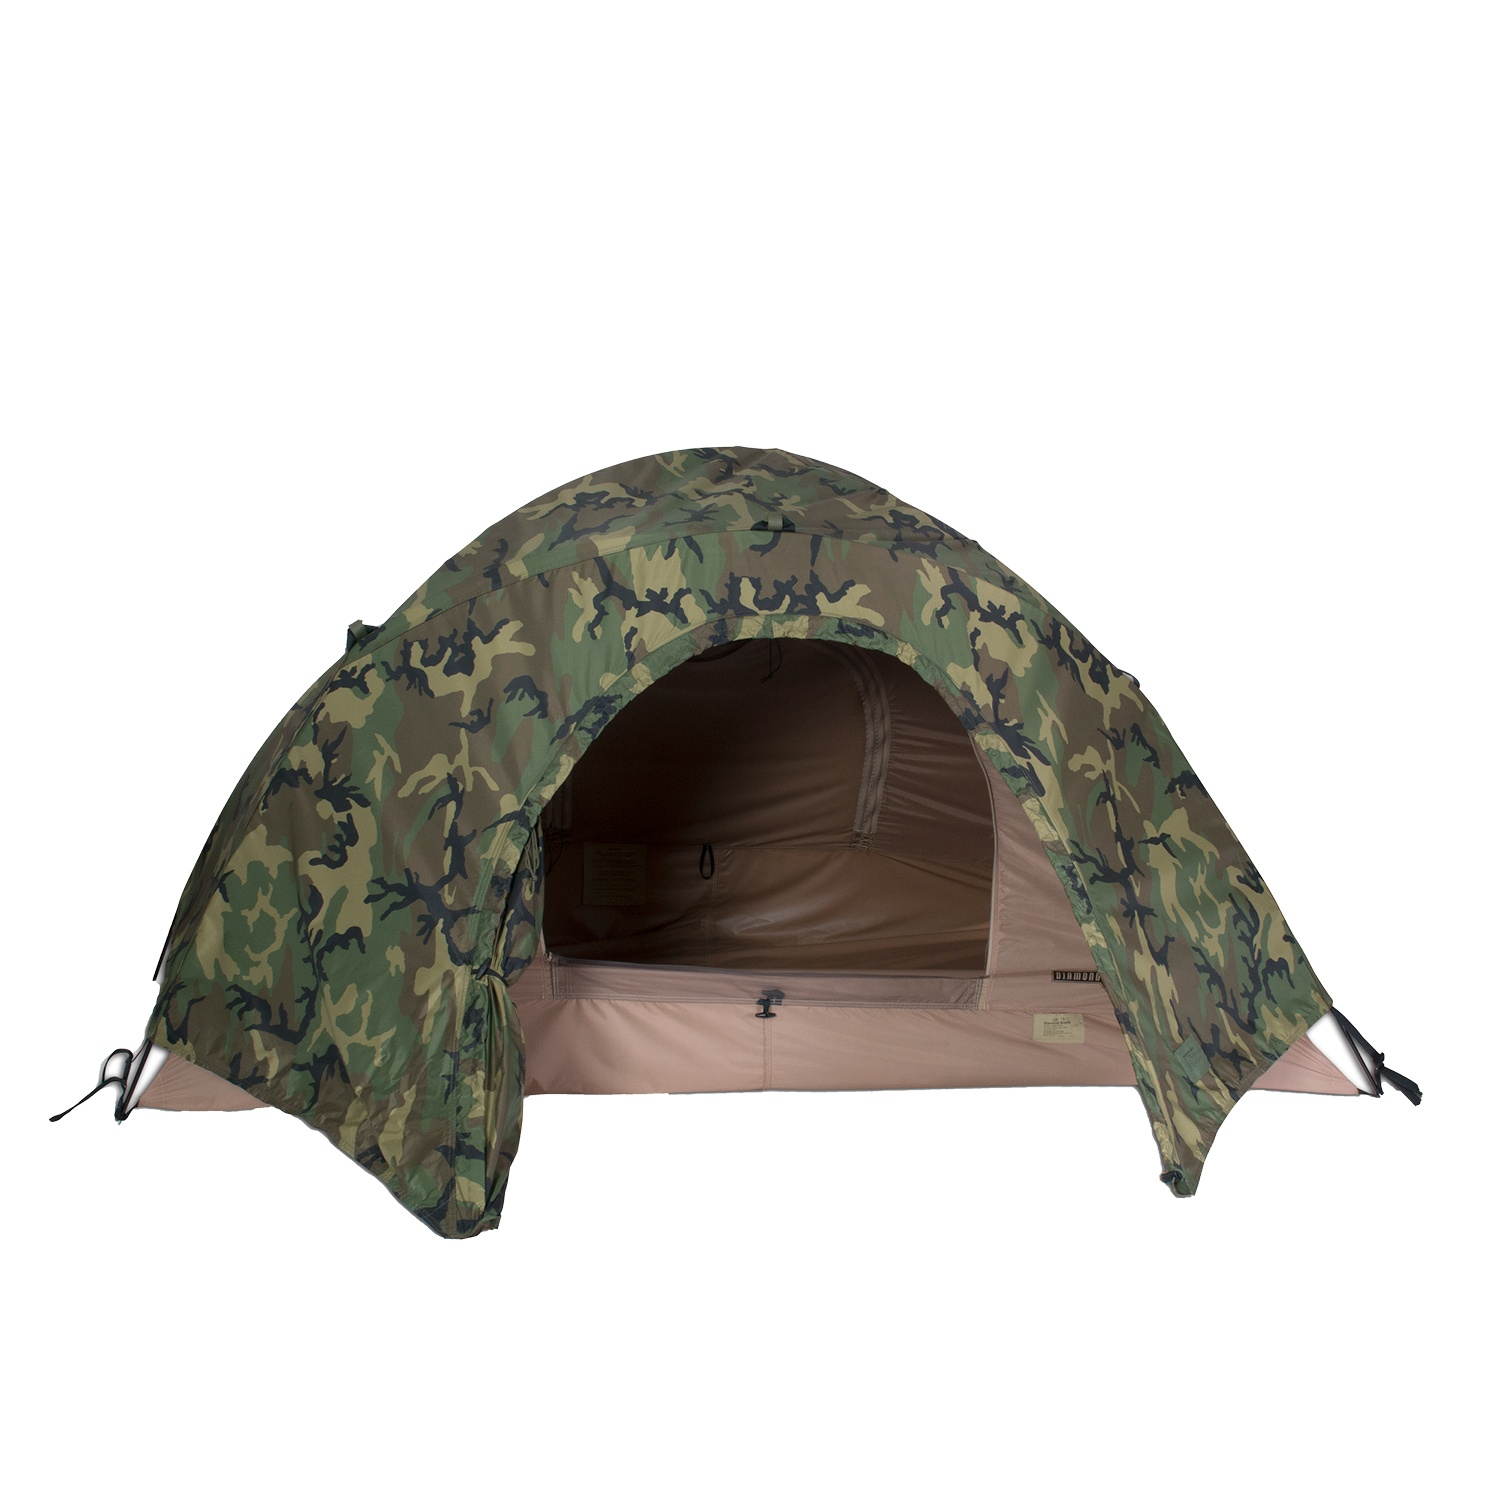 Combat II Tent with Camo Rainfly